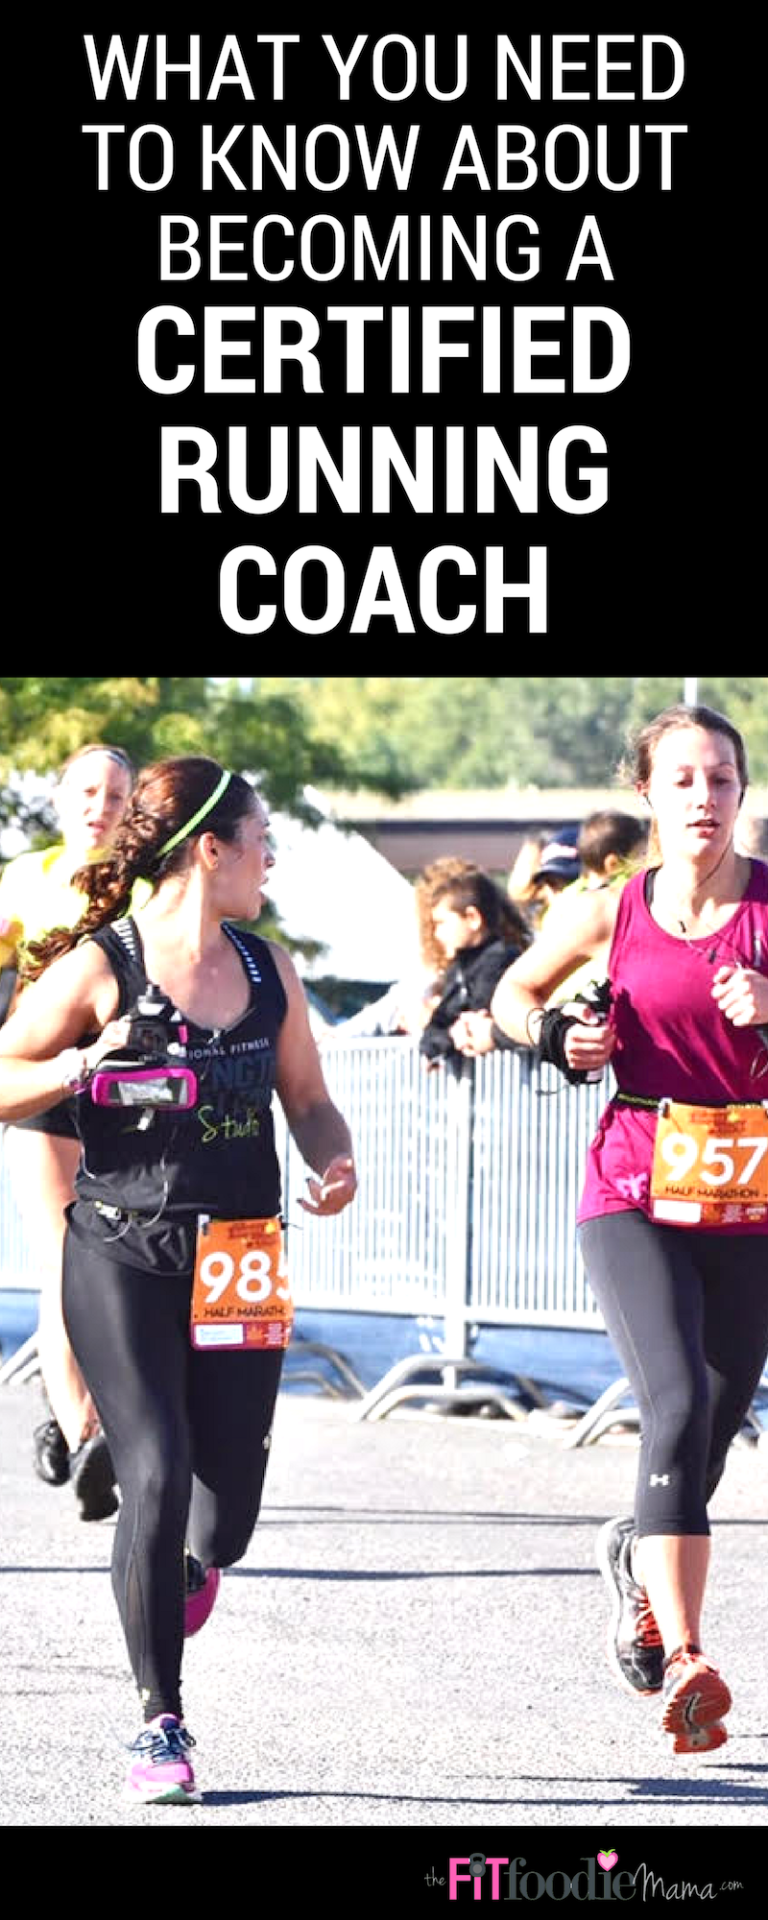 What You Need To Know About Becoming A Certified Running Coach